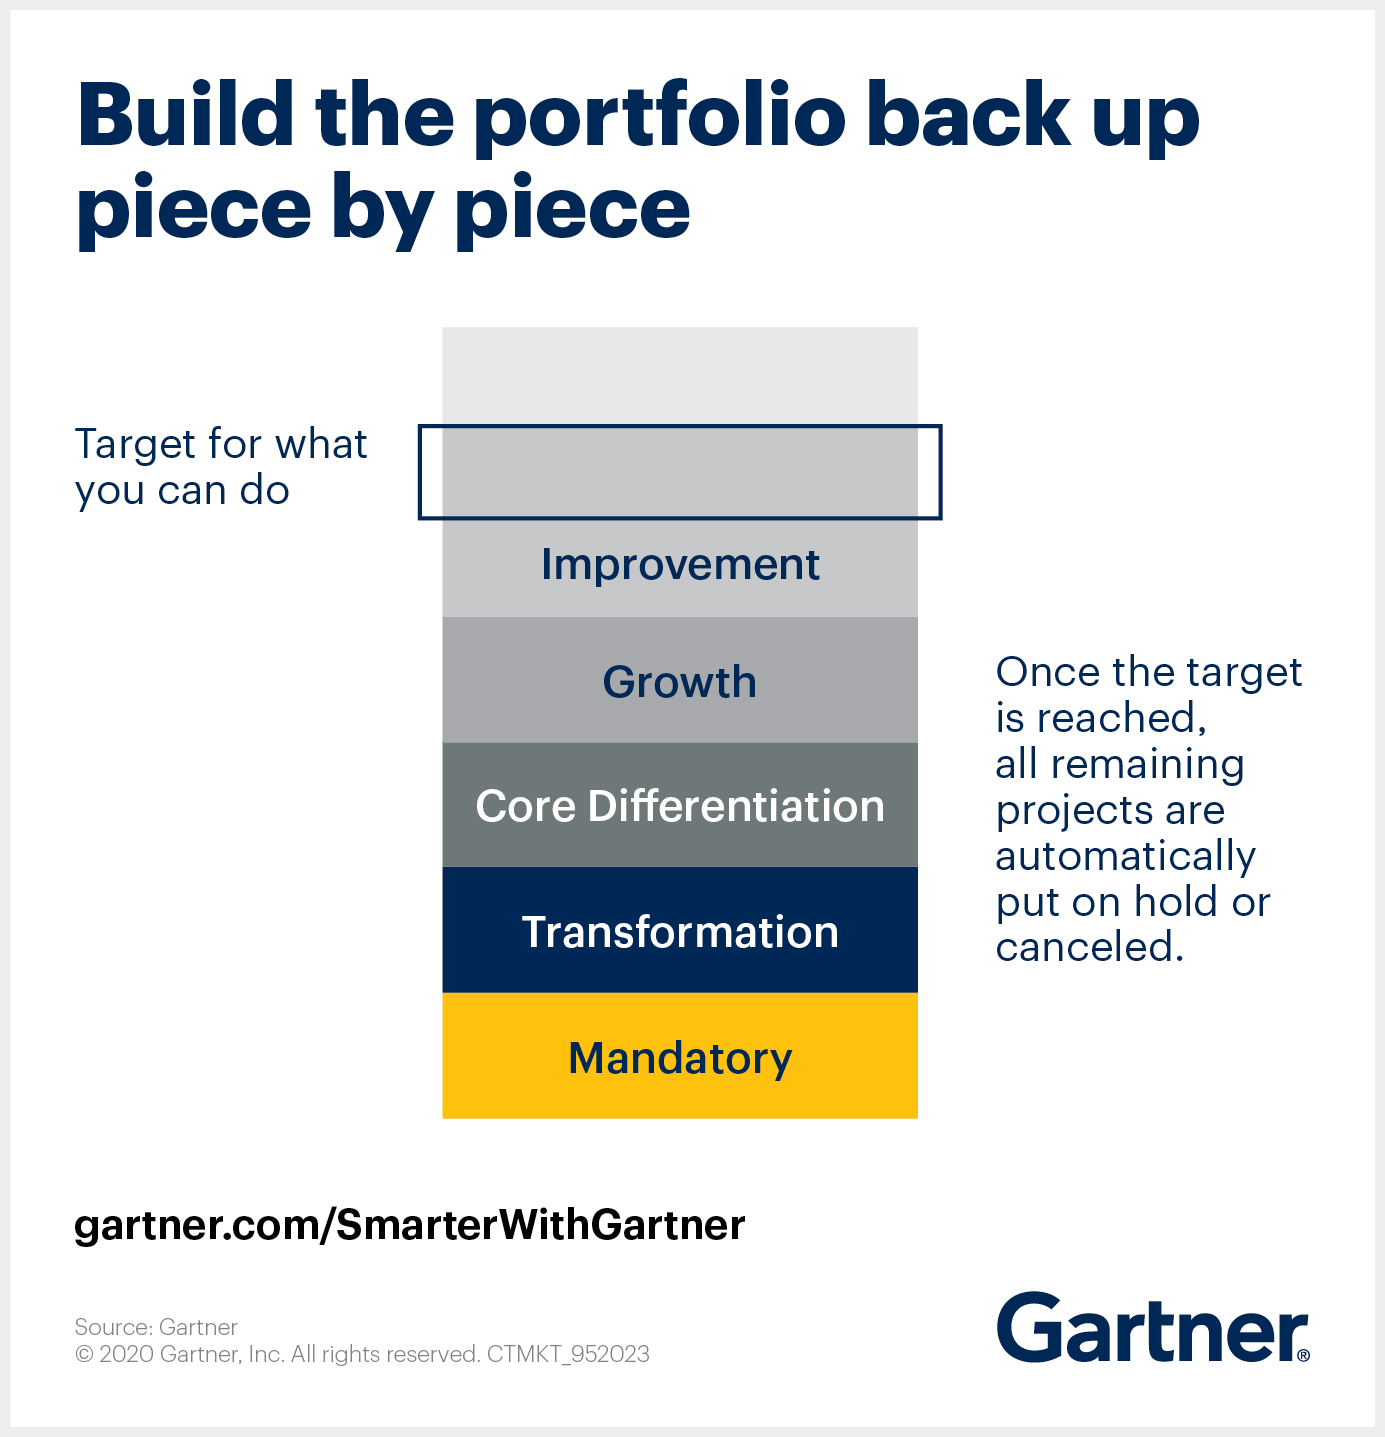 Gartner illustrates how to build your project portfolio back up from zero, piece by piece.